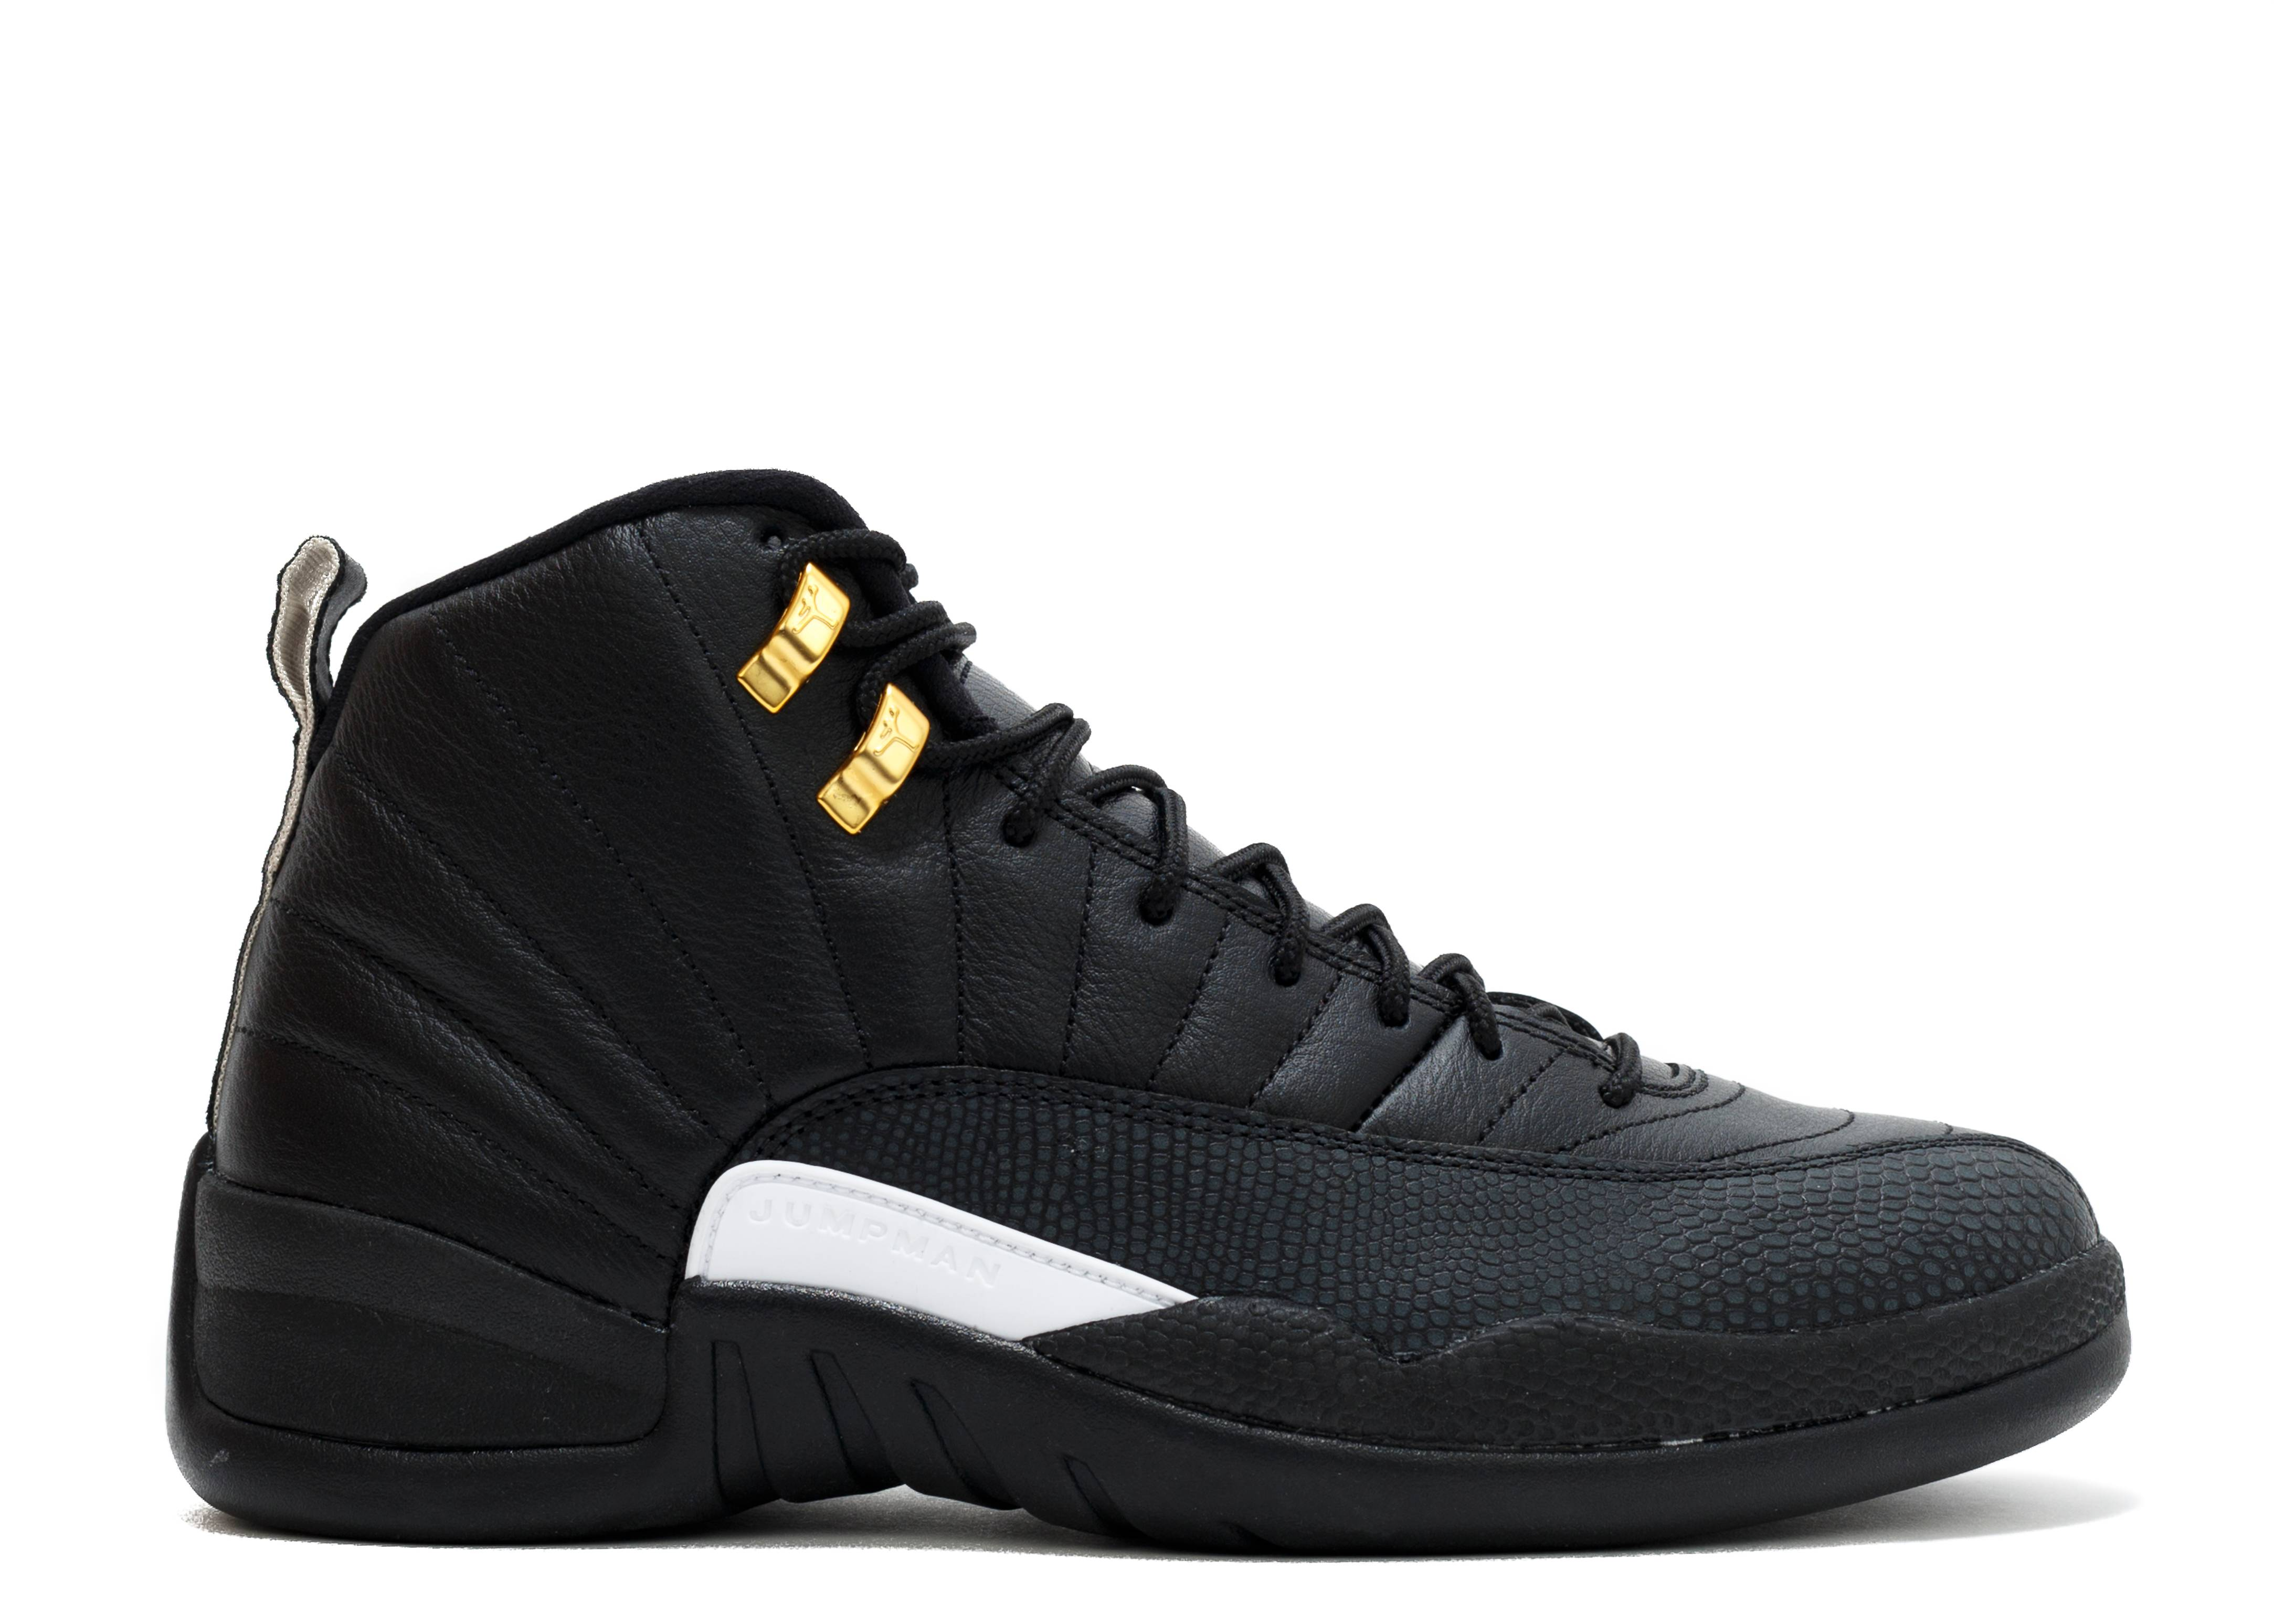 newest f23b8 de051 air jordan 12 retro